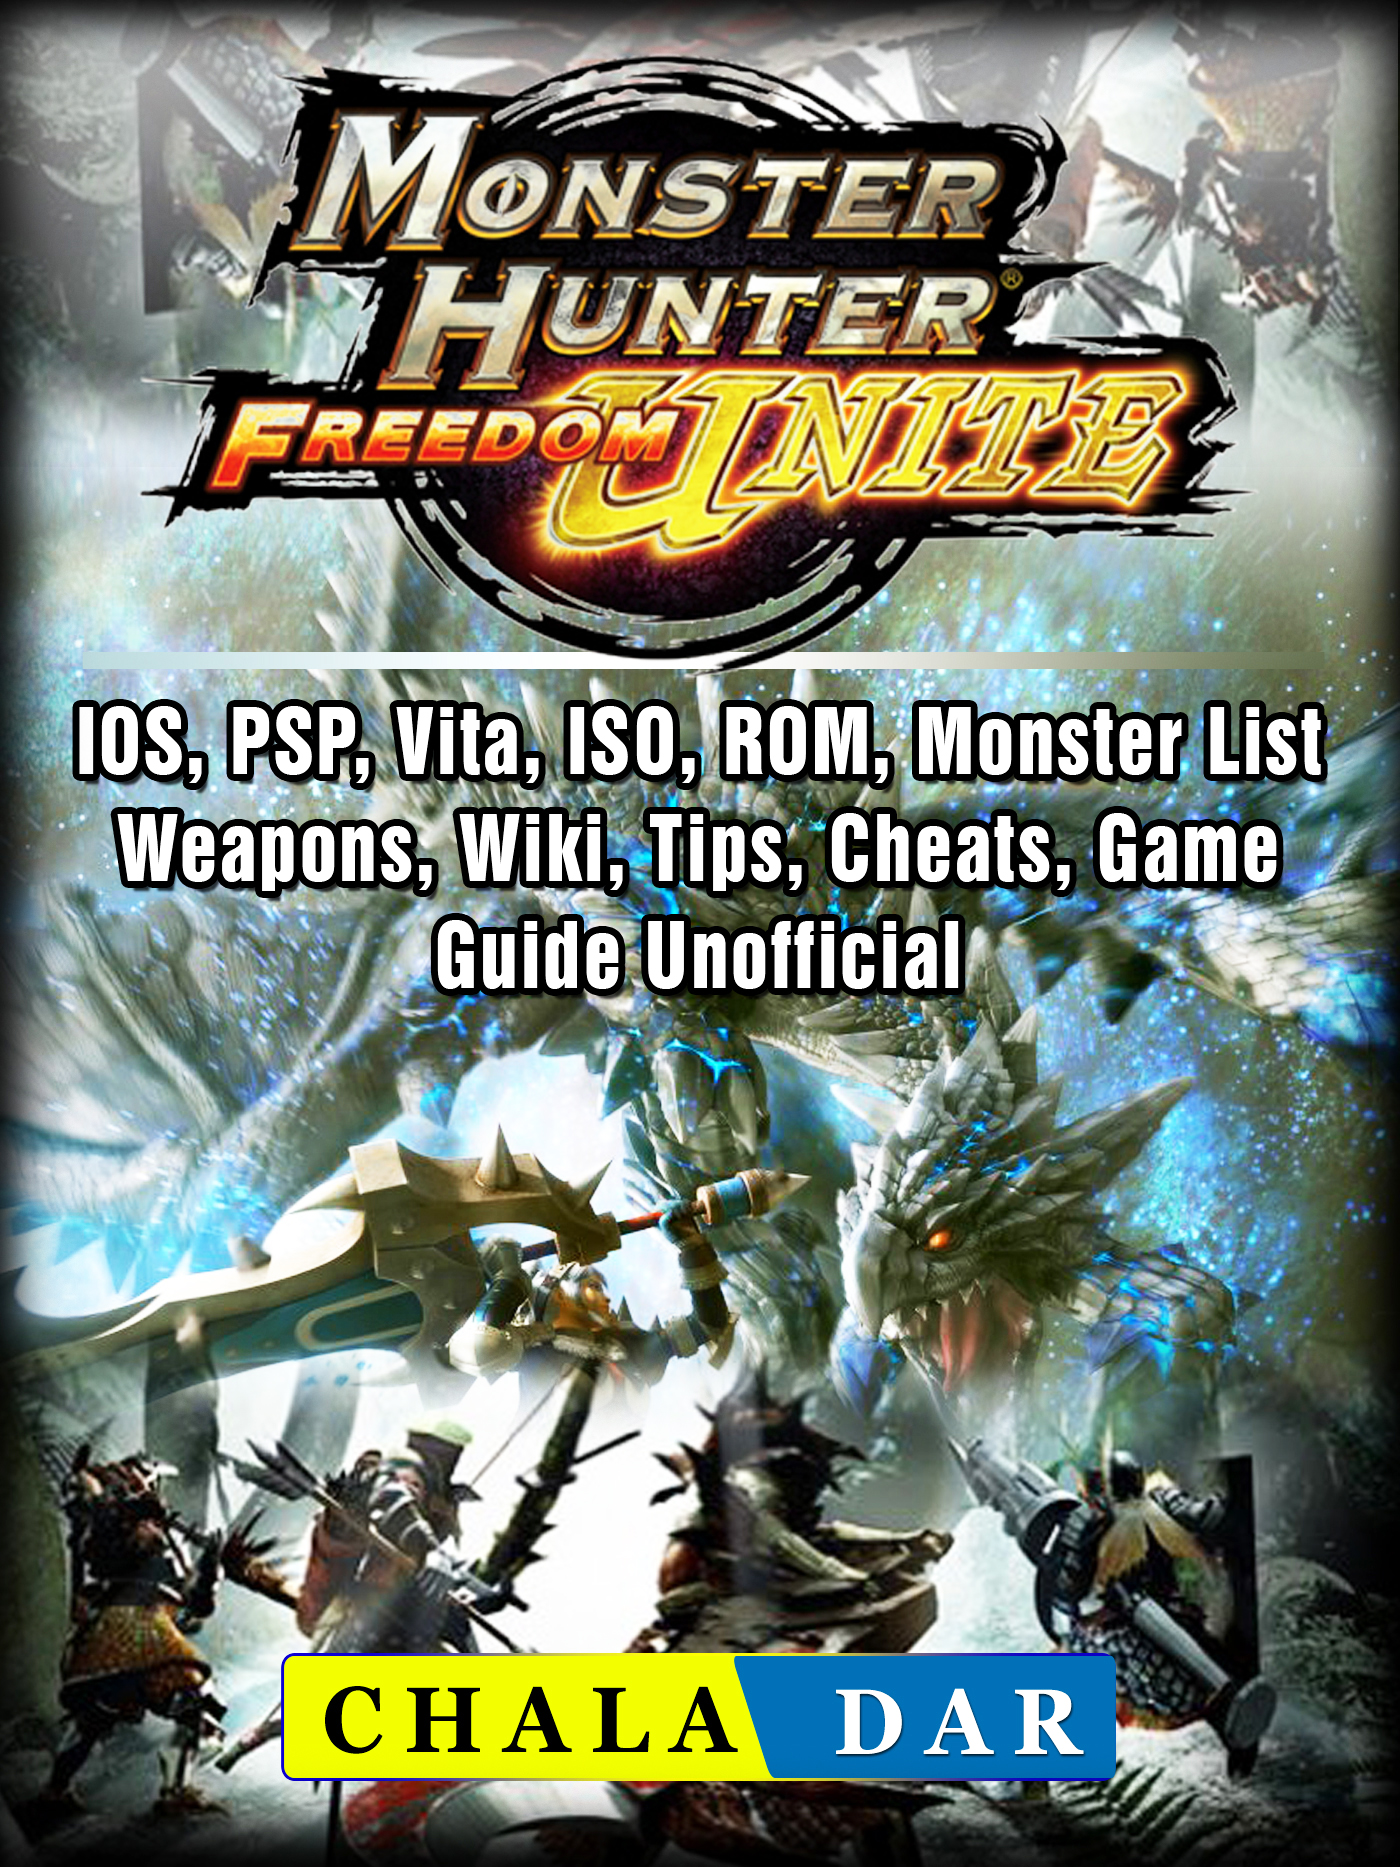 Download Game Ppsspp High Compress : download, ppsspp, compress, Monster, Hunter, Portable, Ppsspp, Highly, Compressed